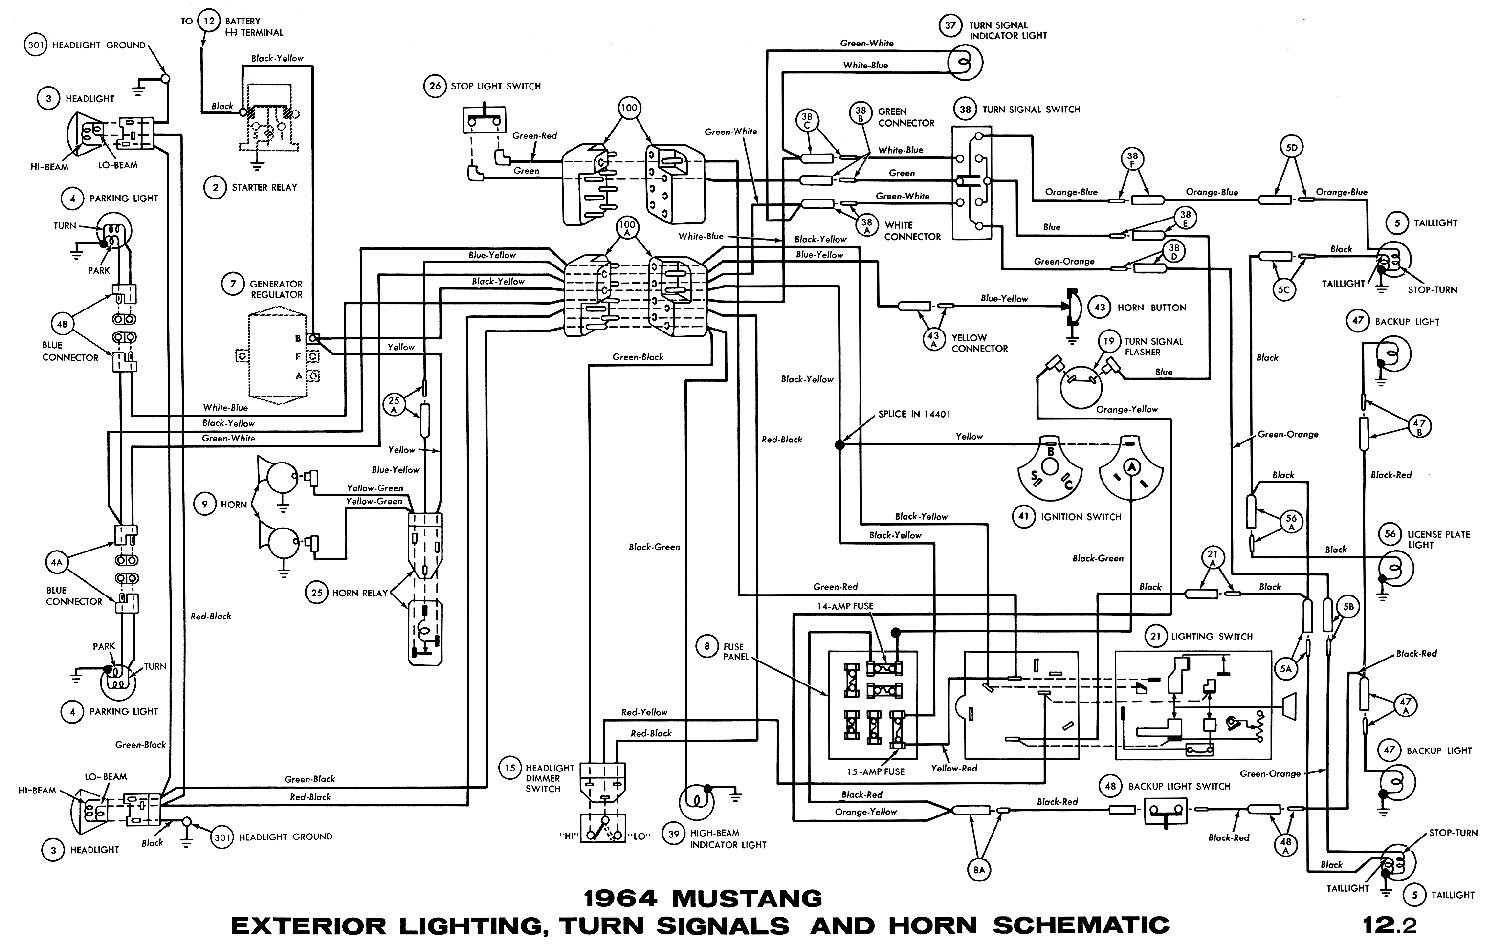 toro vt4 satellite wiring diagram wiring diagram Small Engine Magneto Wiring-Diagram toro vt4 satellite wiring diagram wiring diagram schematicstoro vt4 satellite wiring diagram wiring schematic toro vt4